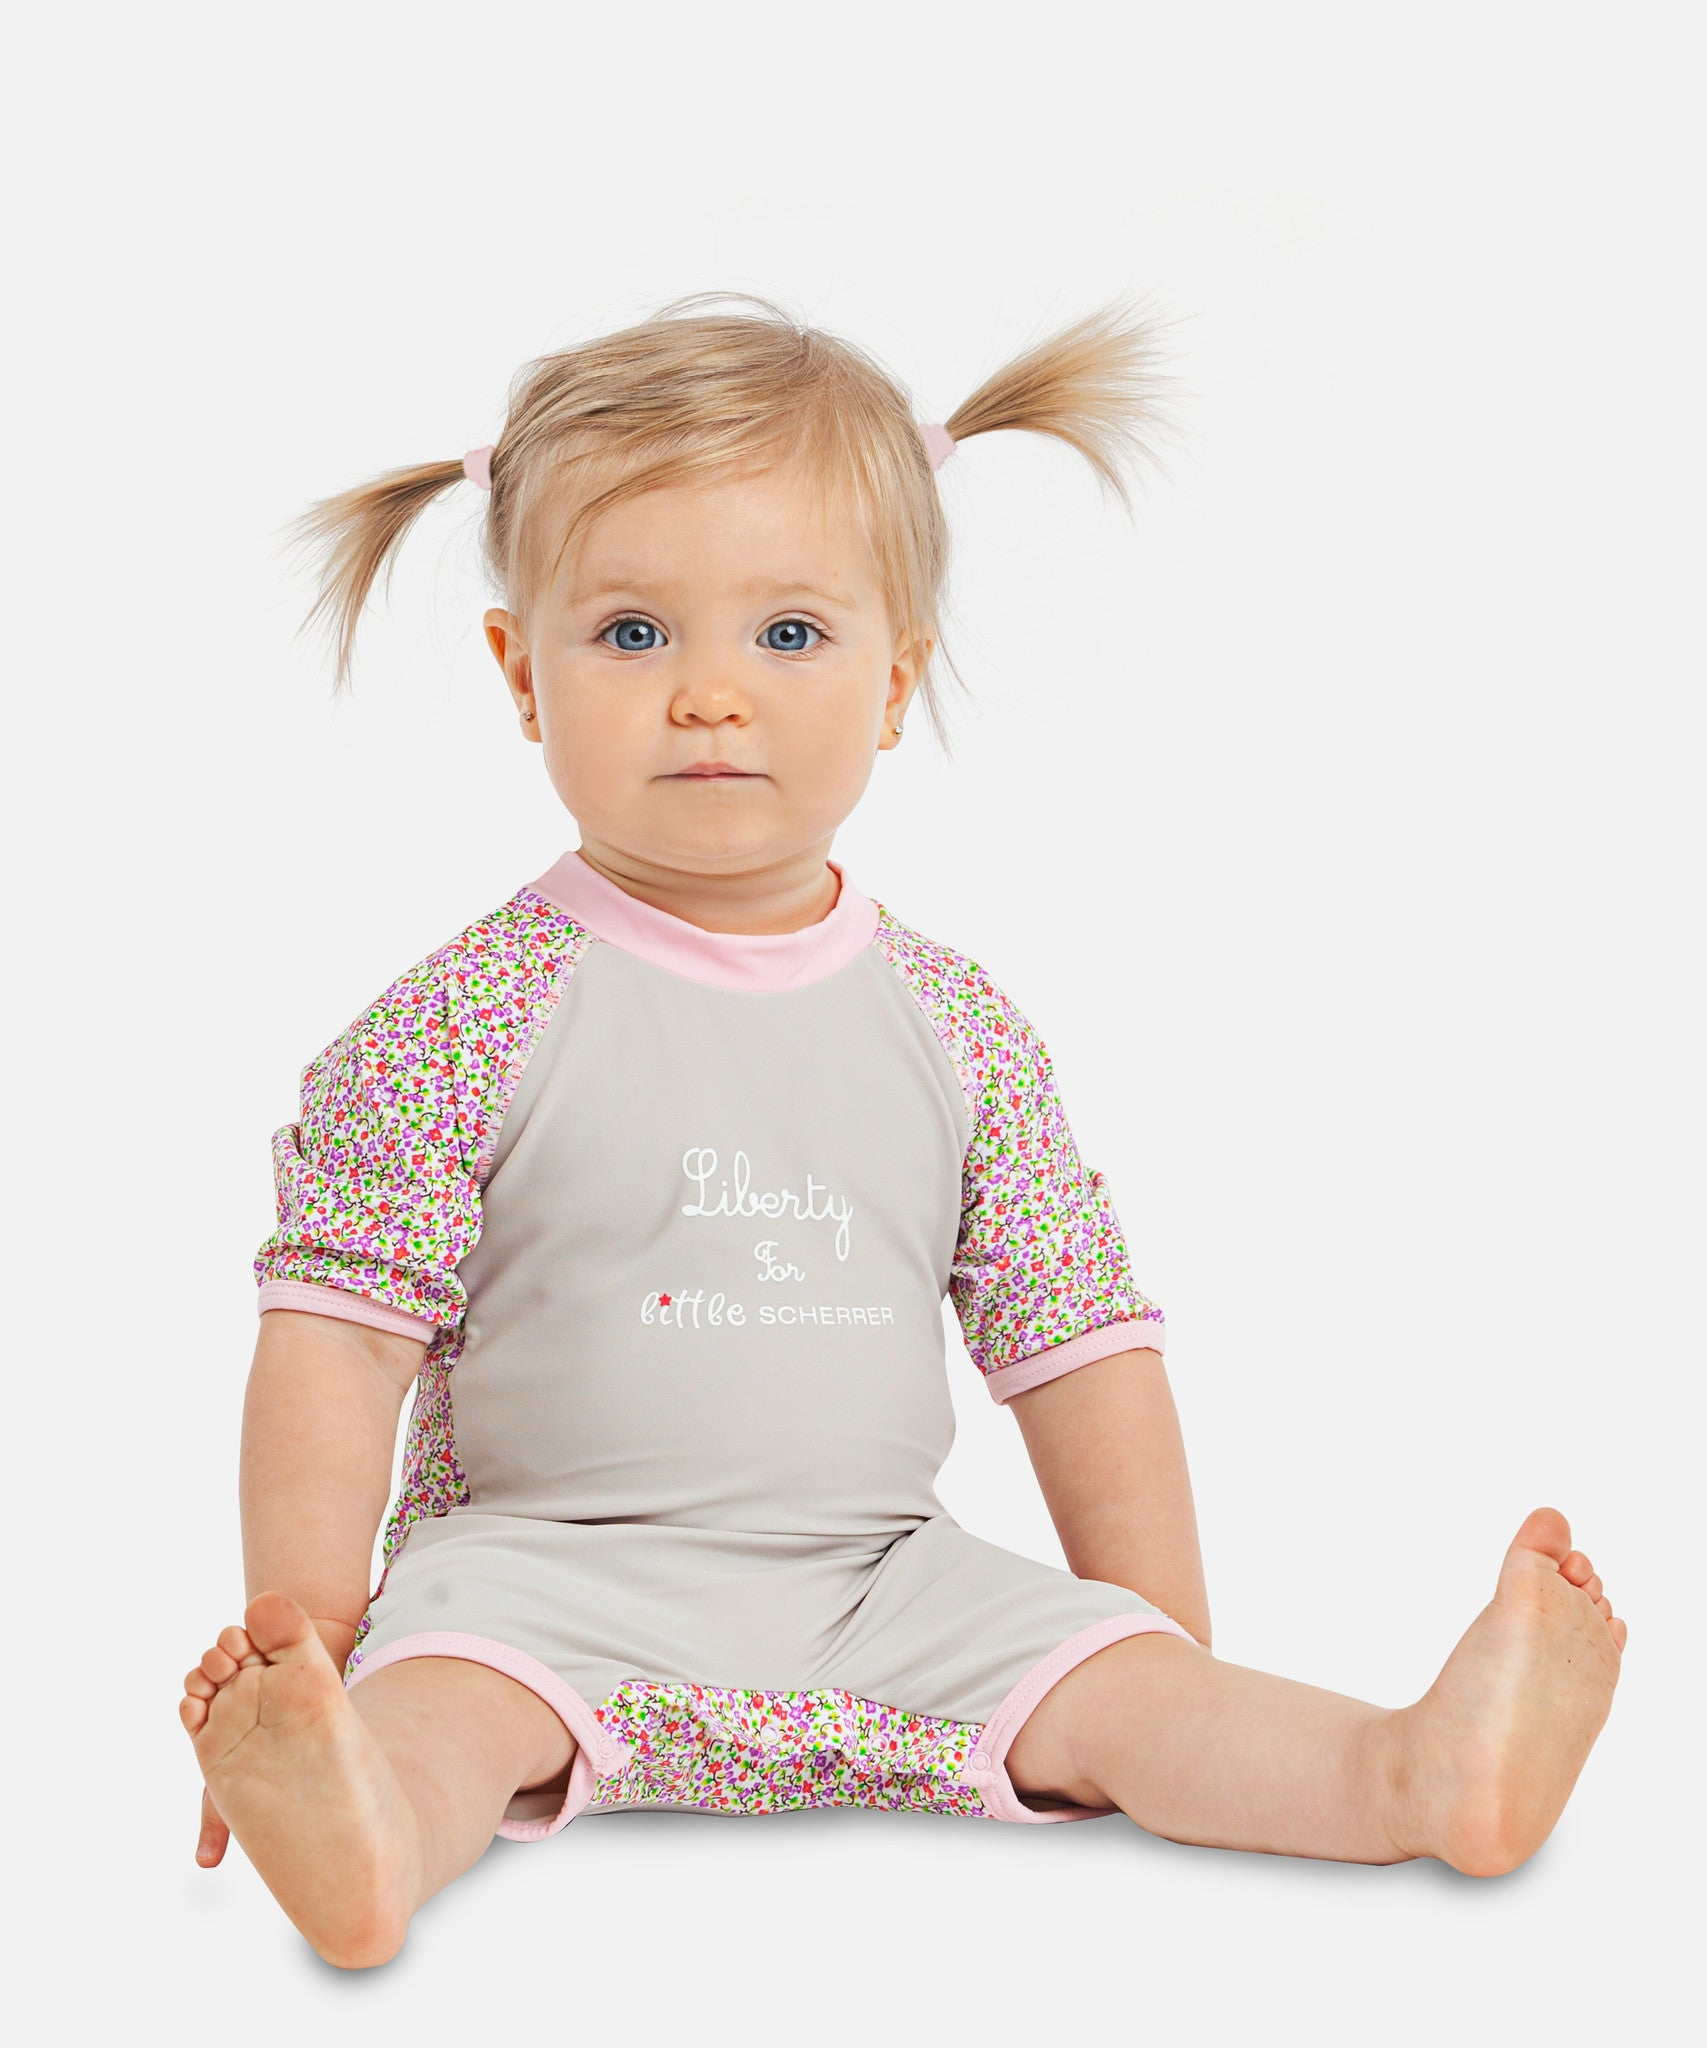 Adorable girls UV one-piece Sunsuits with a skirt by Elly la Fripouille. Comfortable and quick drying, this baby swimwear line is cute, girly and UPF50+.